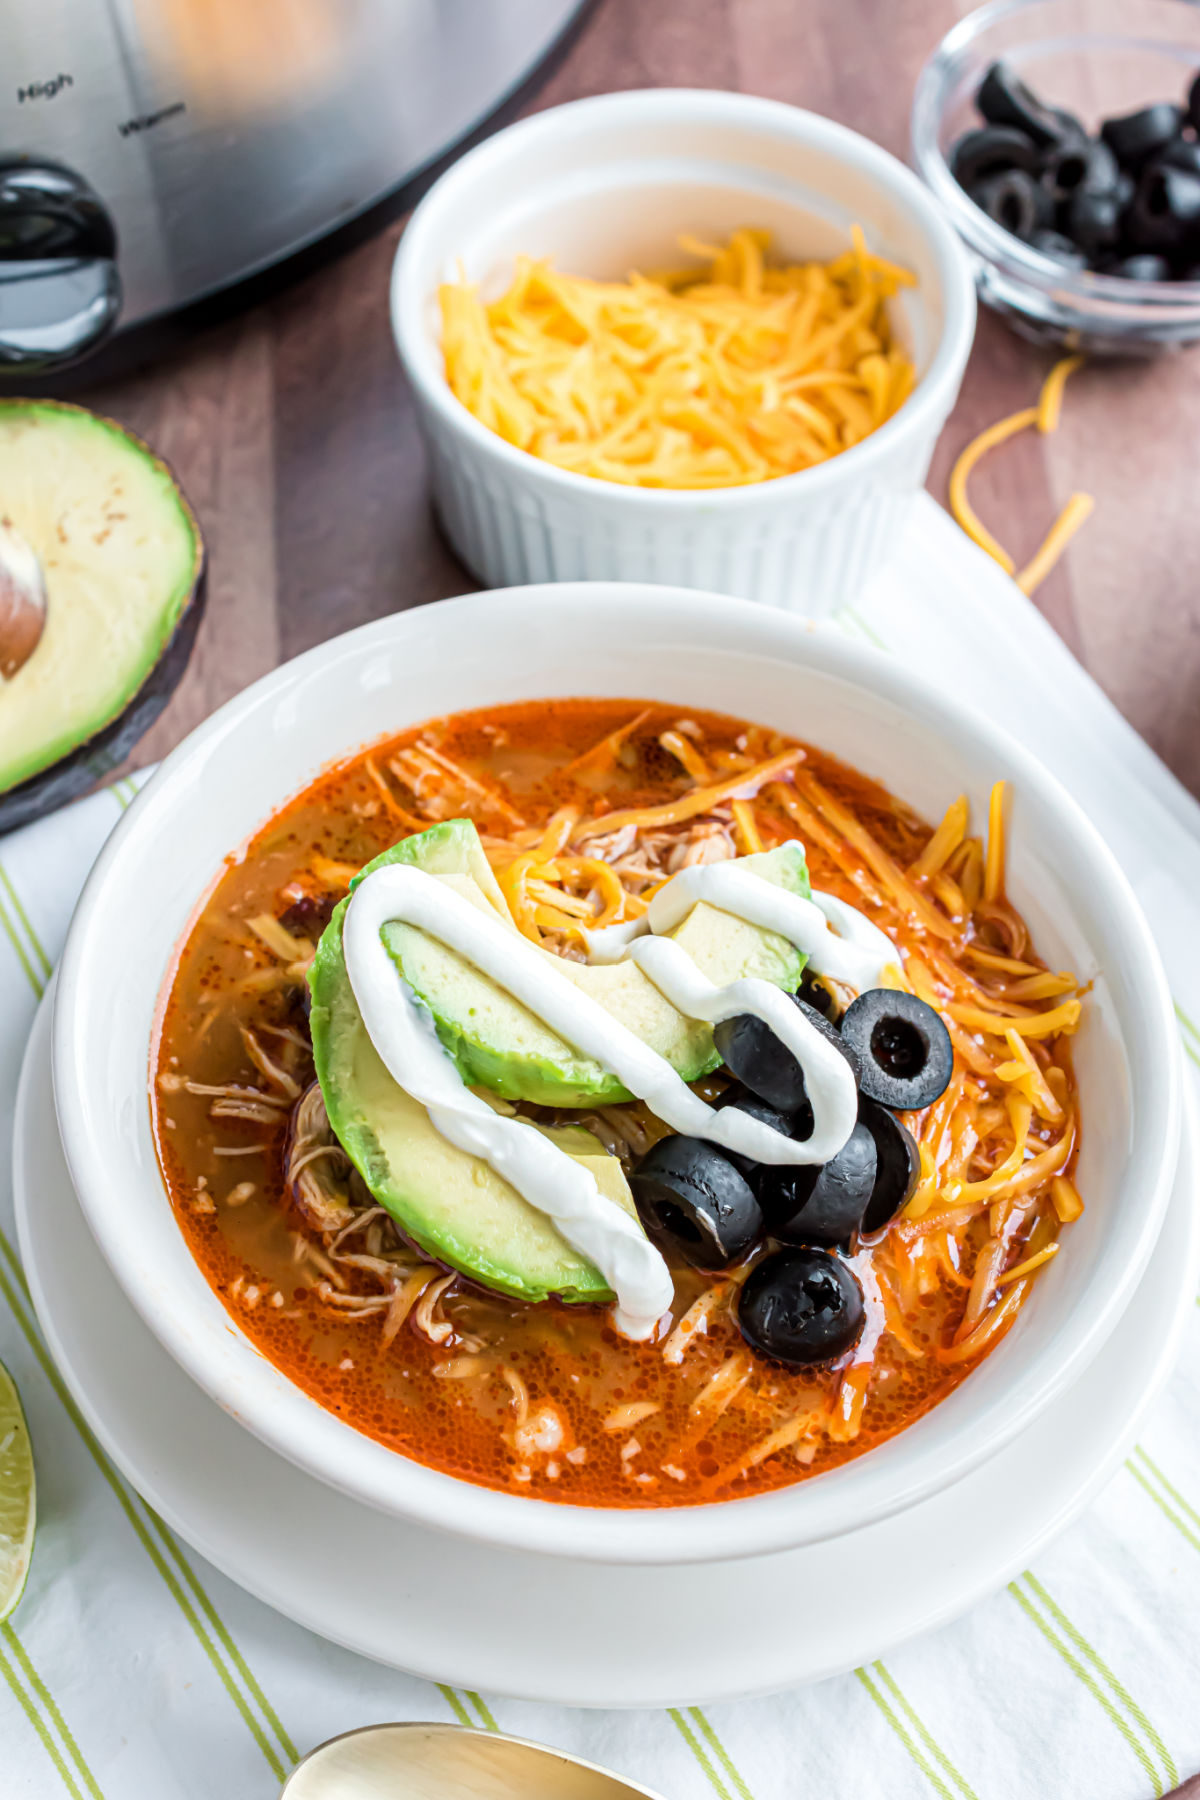 Bowl of chicken enchilada soup garnished with olives, avocado, and sour cream.